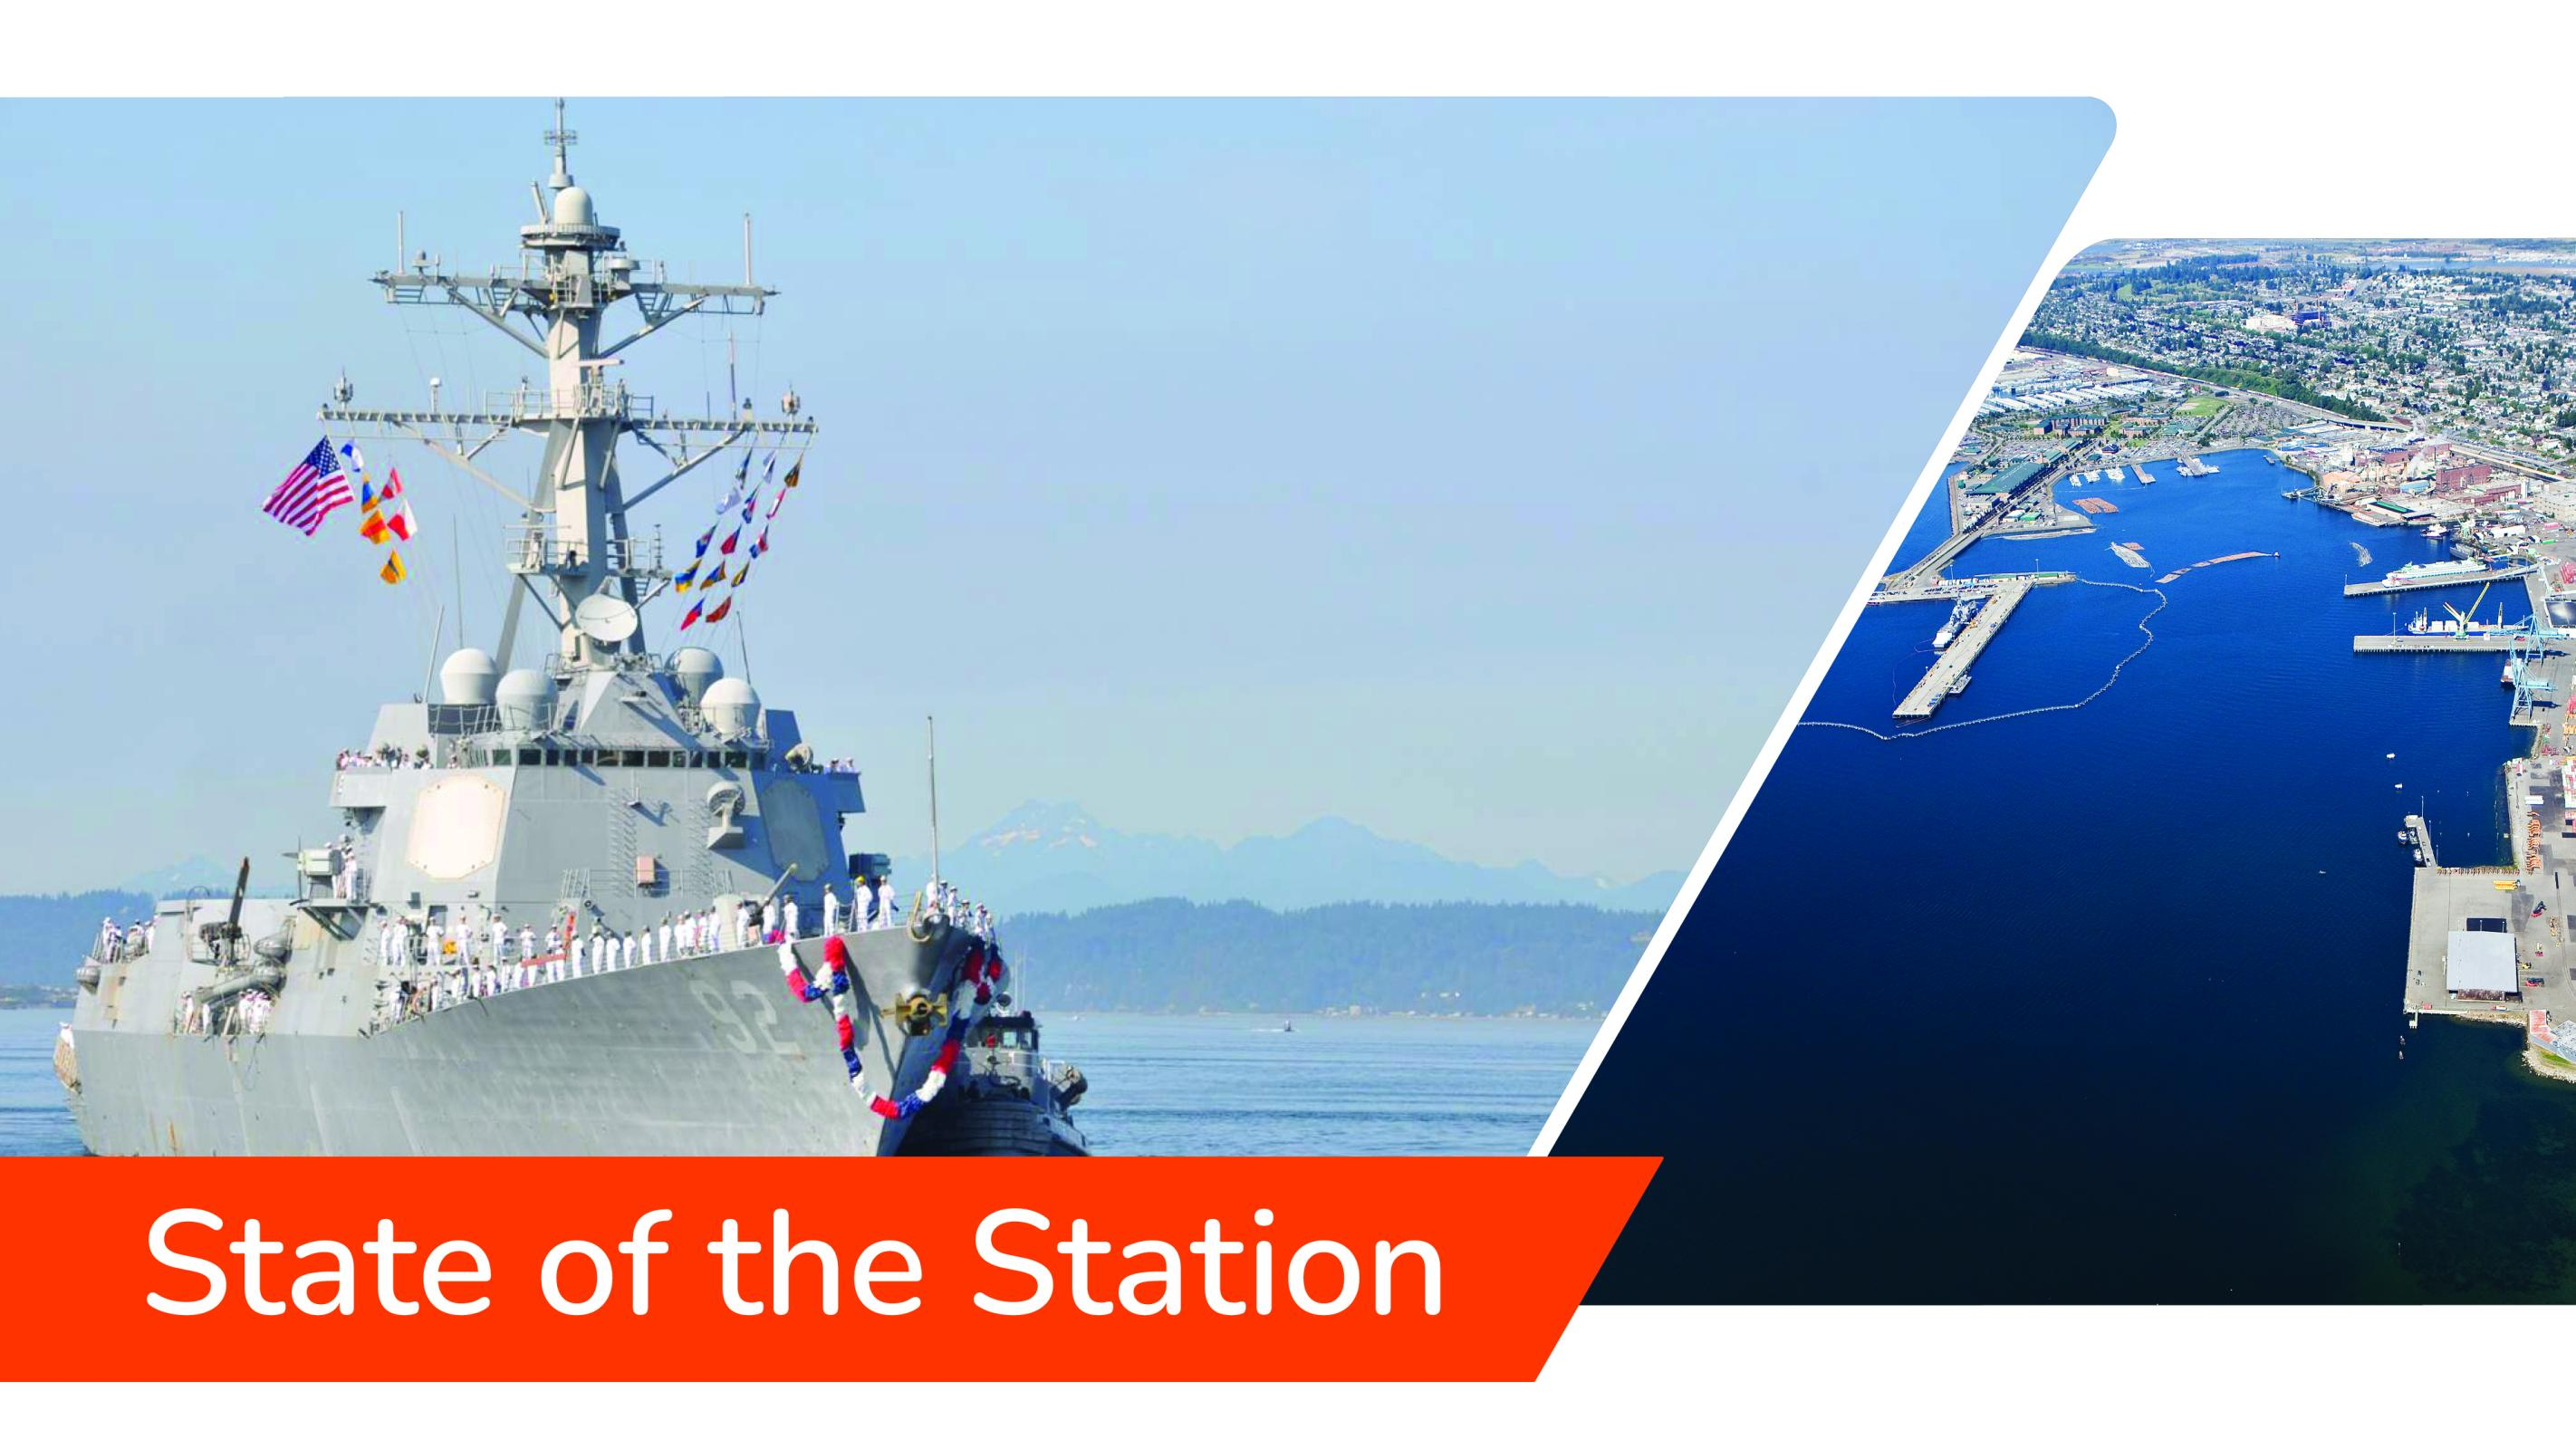 State of the Station Photo